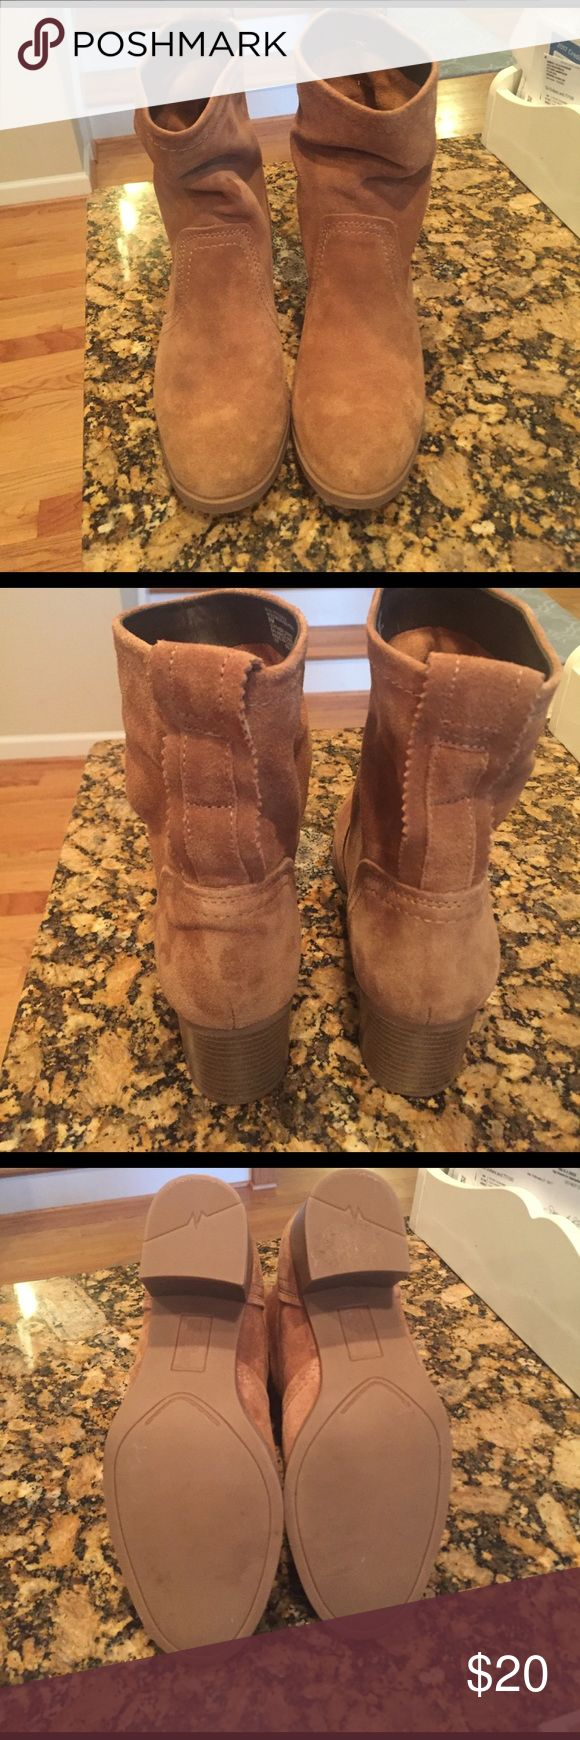 Stone Mountain Suede Boots This is a dark tan suede pair of boots. They are new without a box. So cute with skinny jeans or leggings! stone mountain Shoes Ankle Boots & Booties